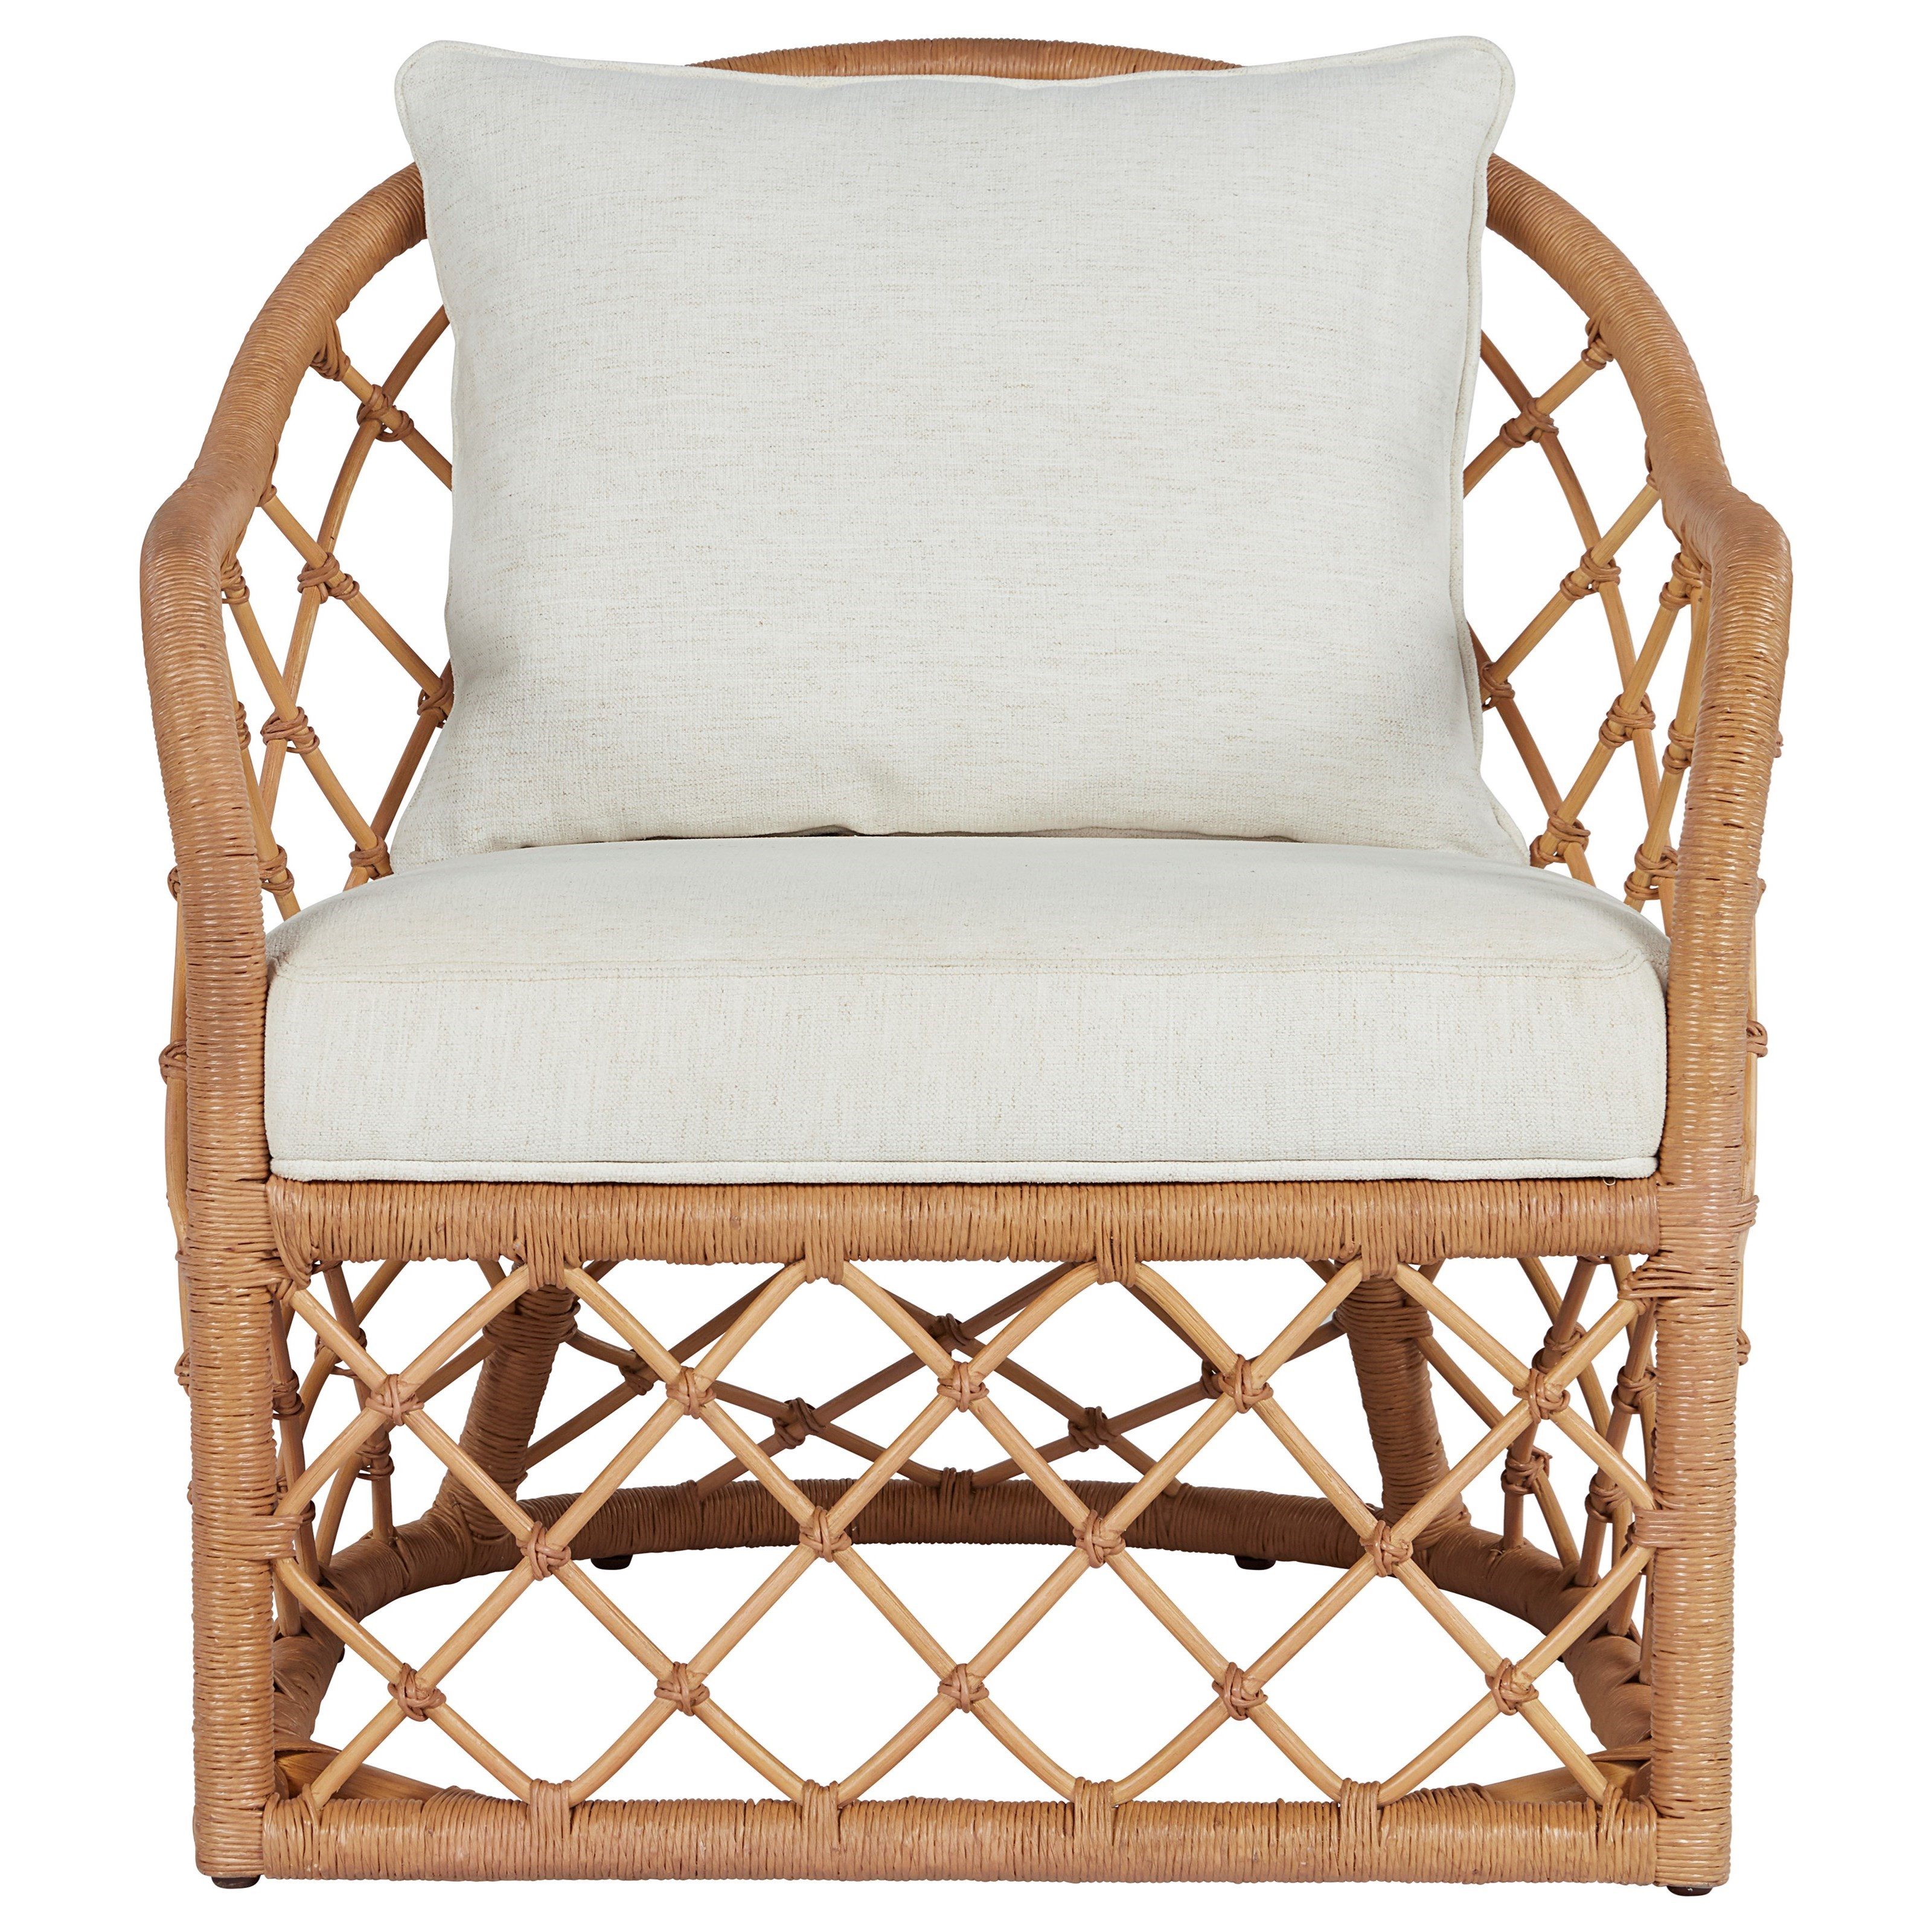 Coastal Living Home - Getaway Accent Chair by Universal at Zak's Home